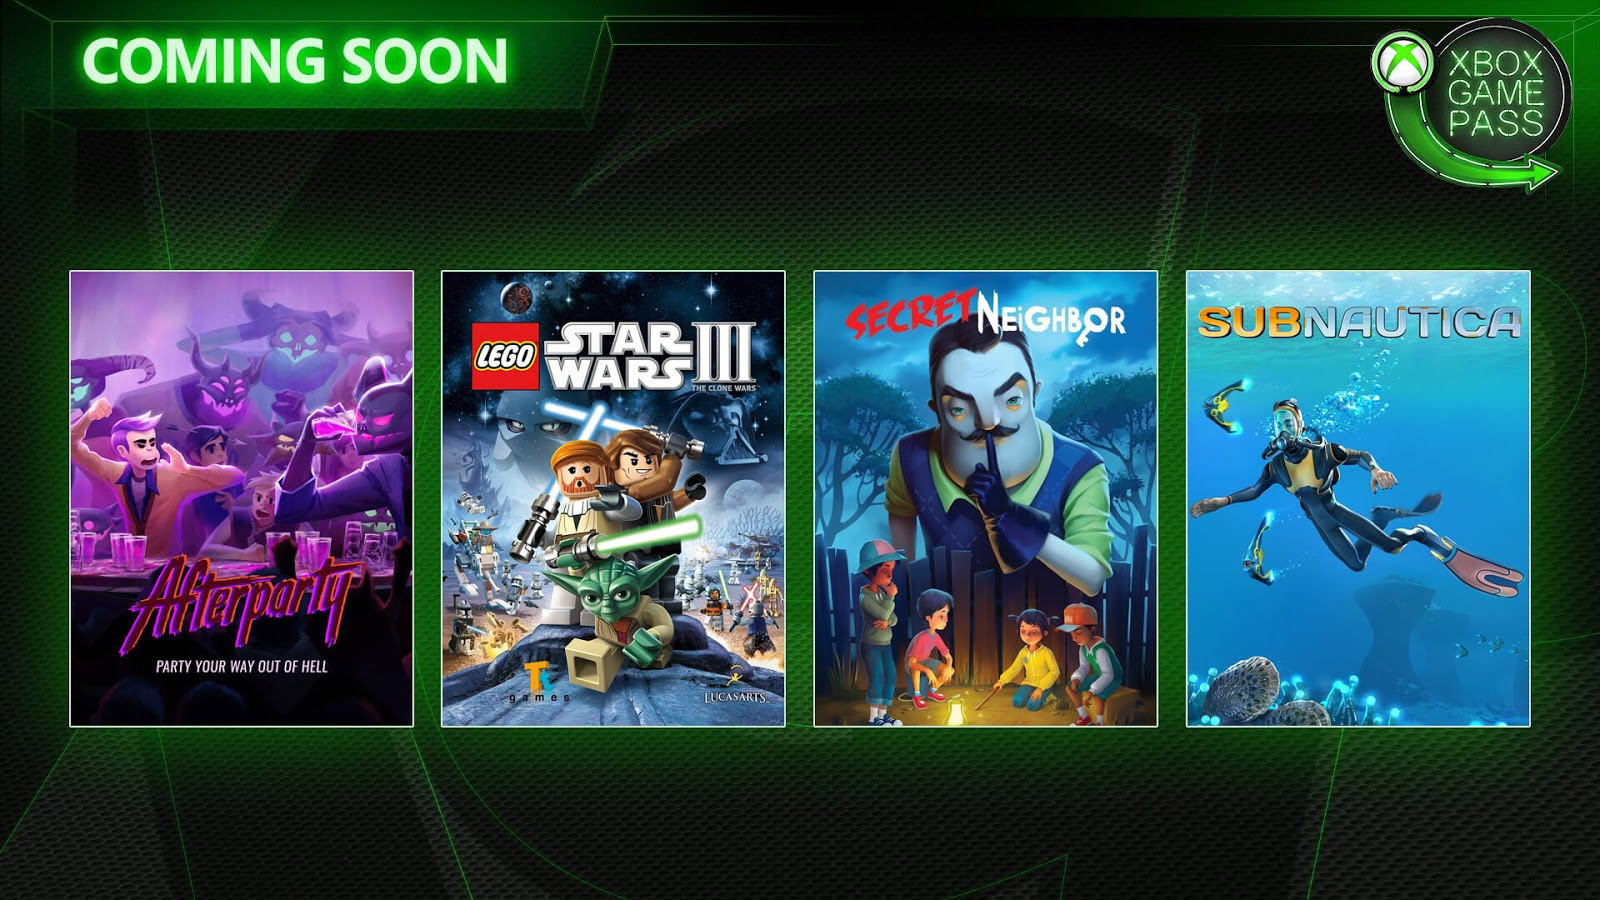 Xbox Game Pass To Add Afterparty Lego Star Wars And More